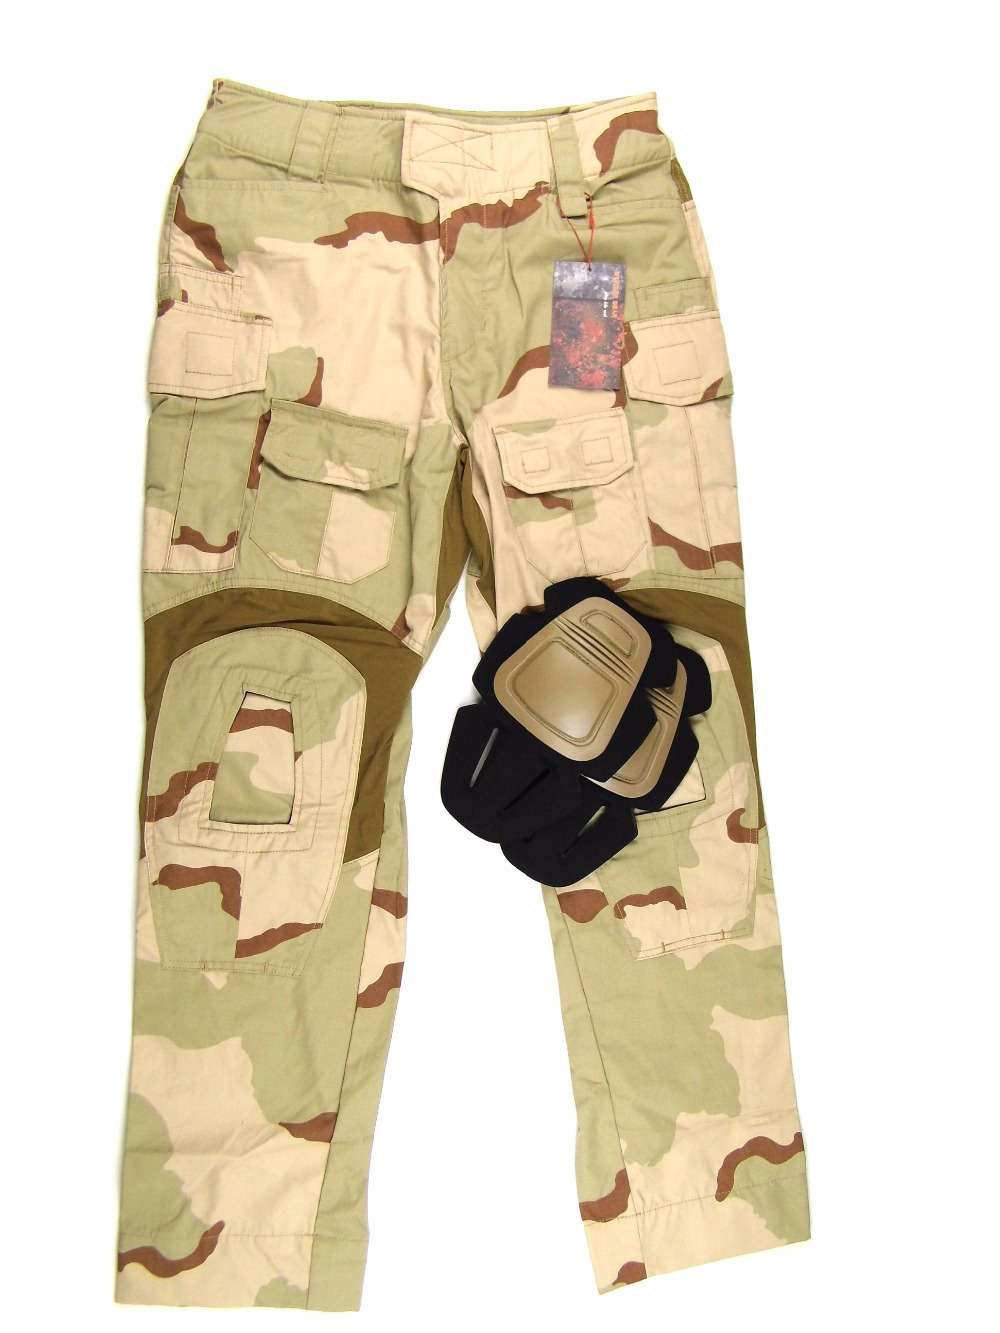 STINGER GEAR DCU G3 Combat Pants NYCO Ripstop Desert Camouflage Trousers+Free shipping(STG050999) велосипед stinger valencia 2017